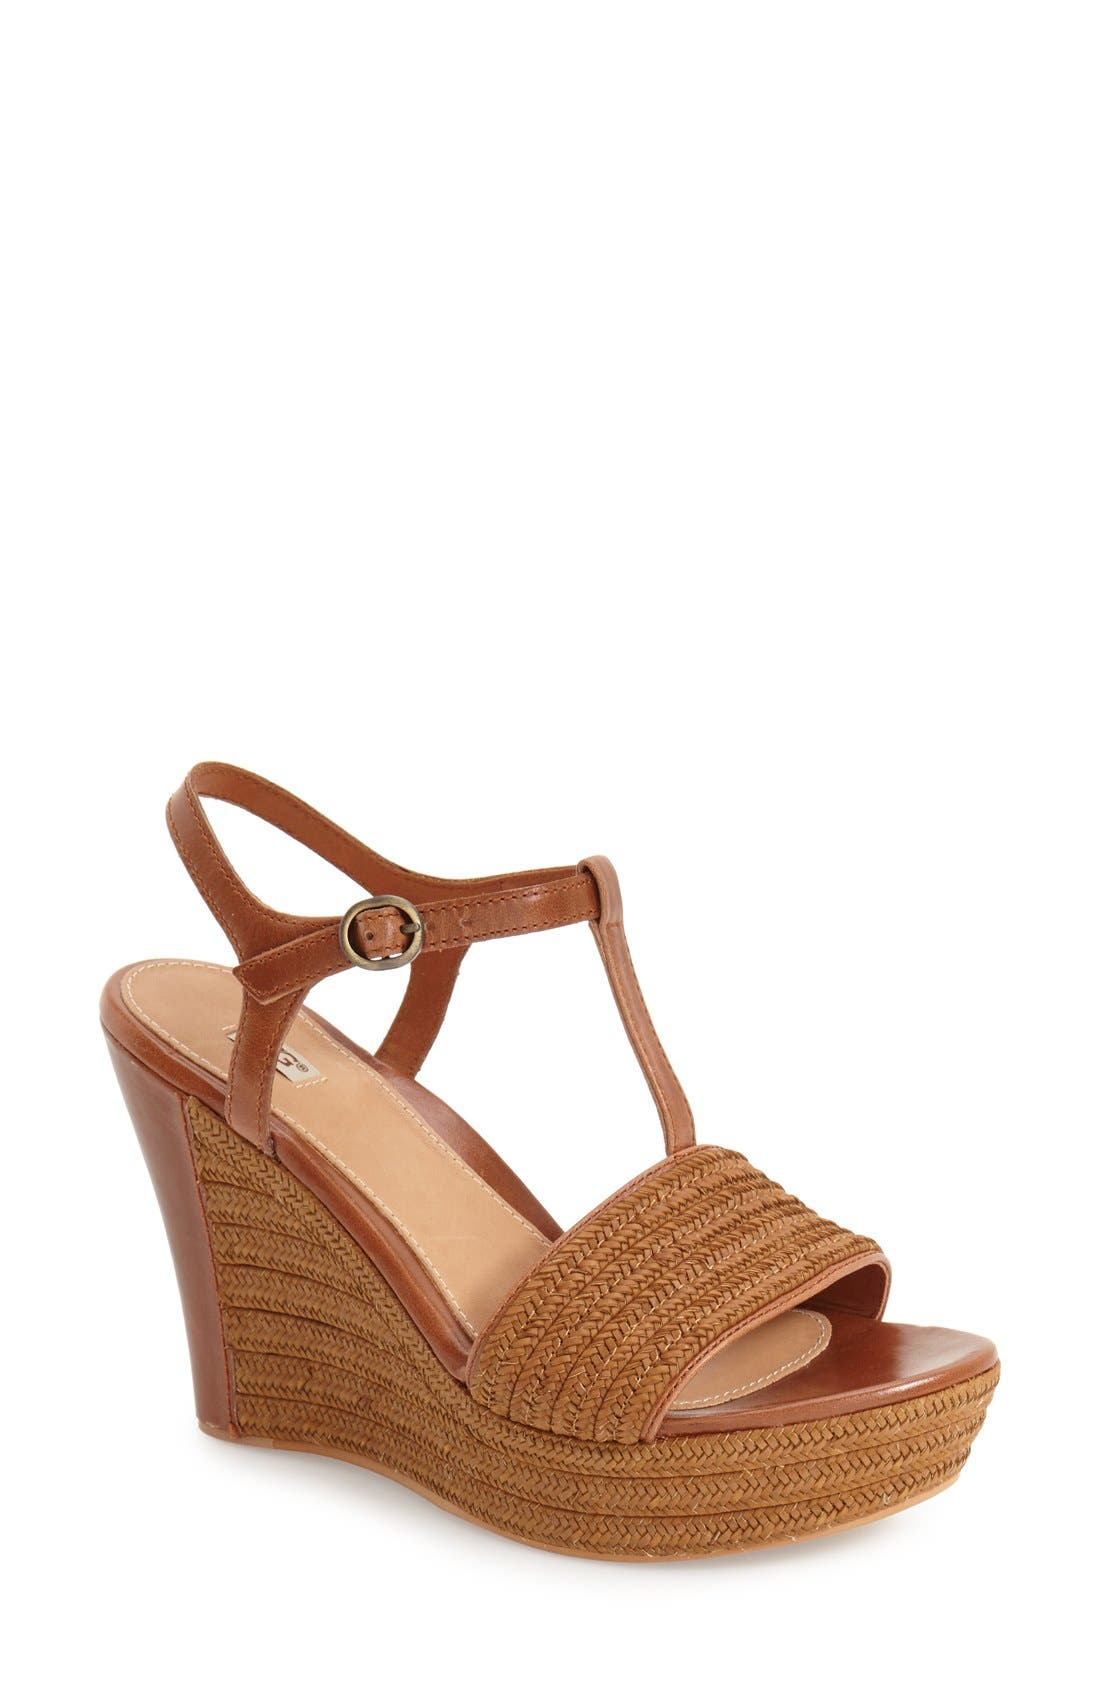 Alternate Image 1 Selected - UGG® 'Fitchie' T-Strap Wedge Sandal (Women)